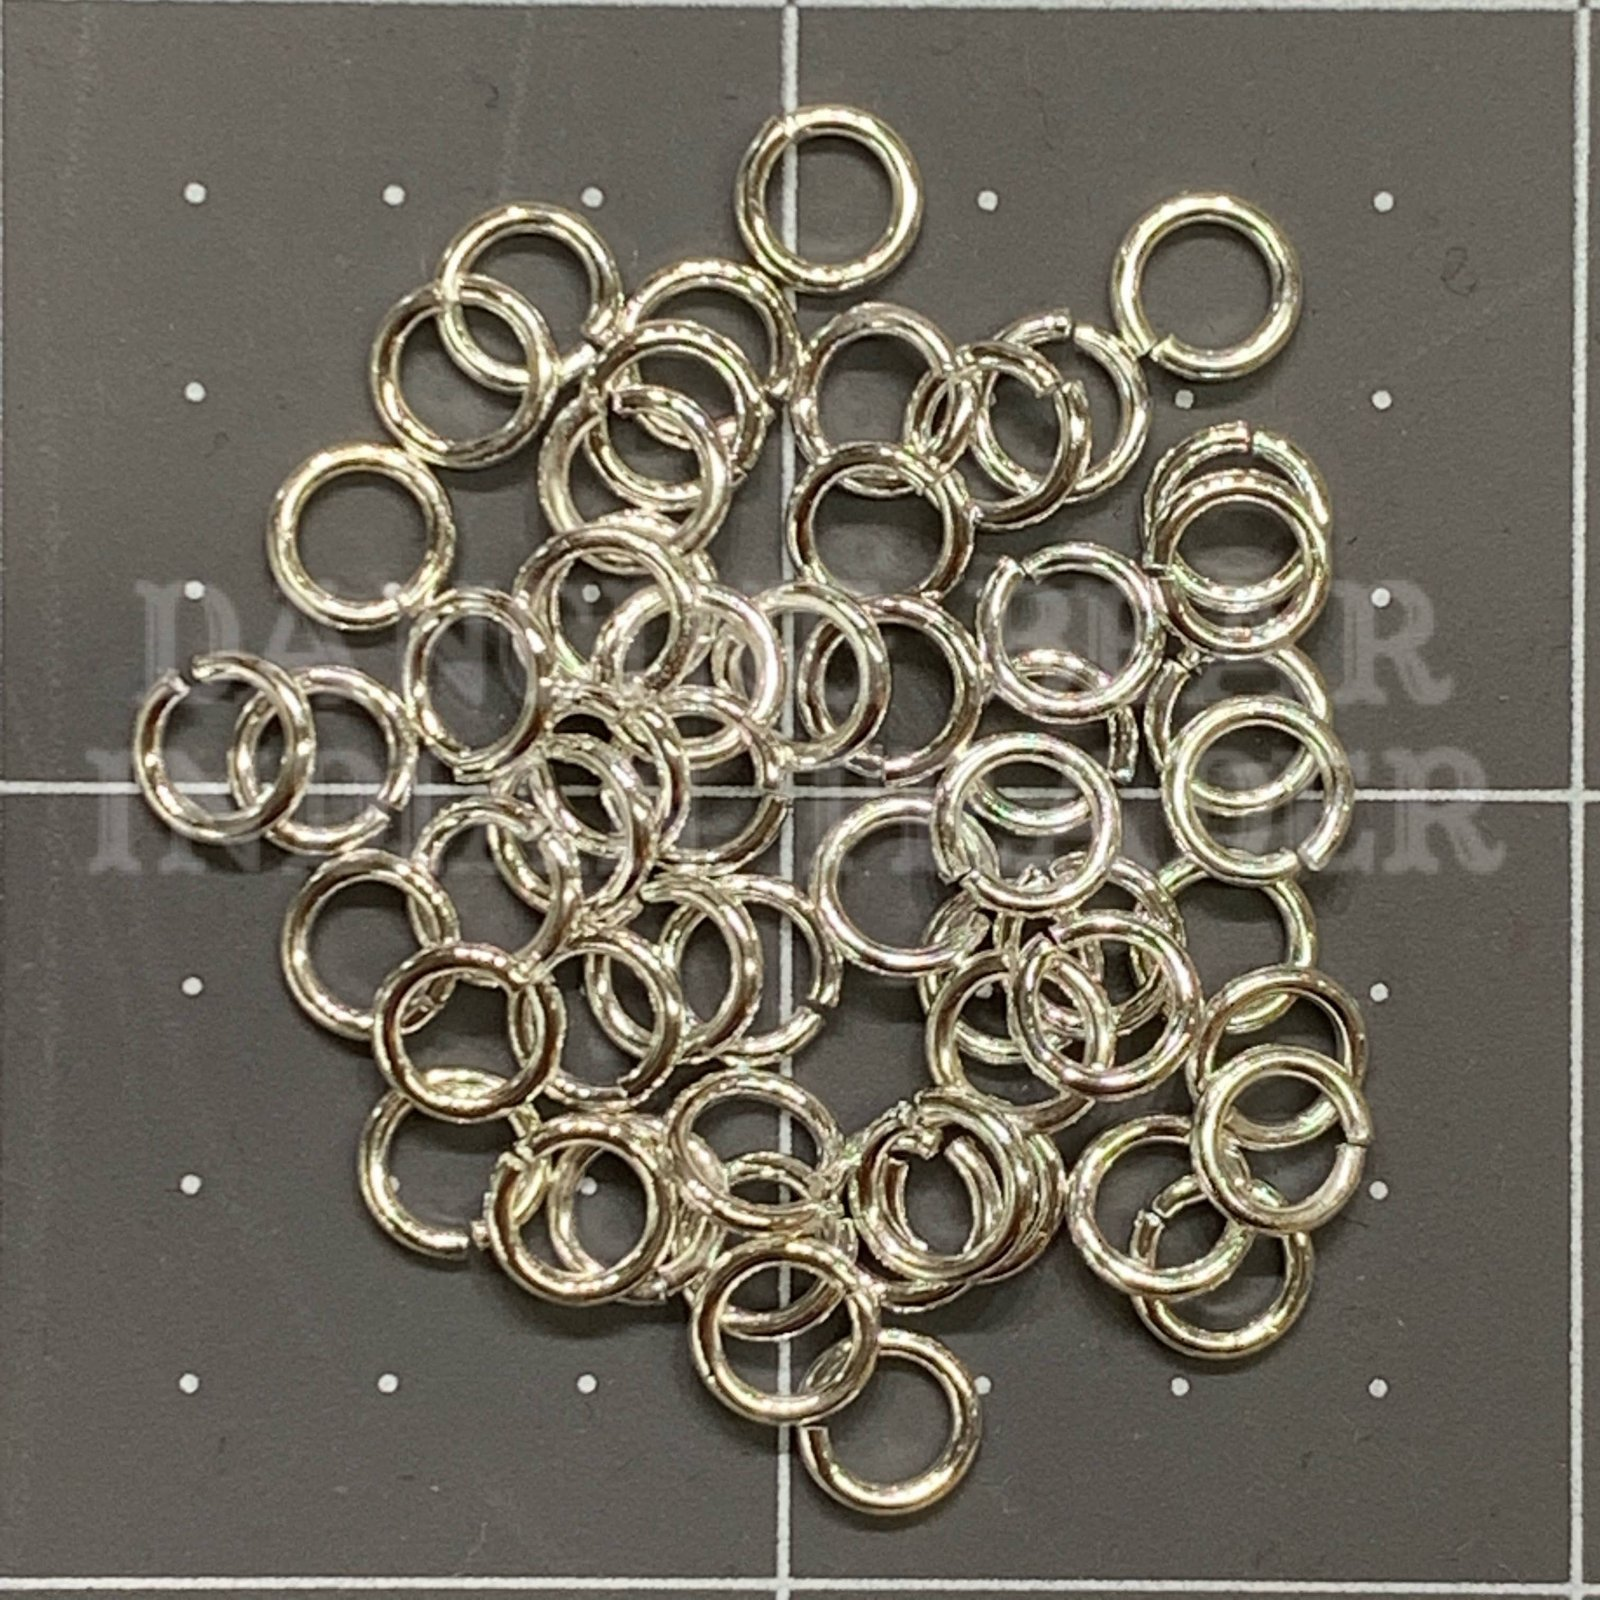 Jump Ring 6mm 18g Silver Plated Hypoallergenic